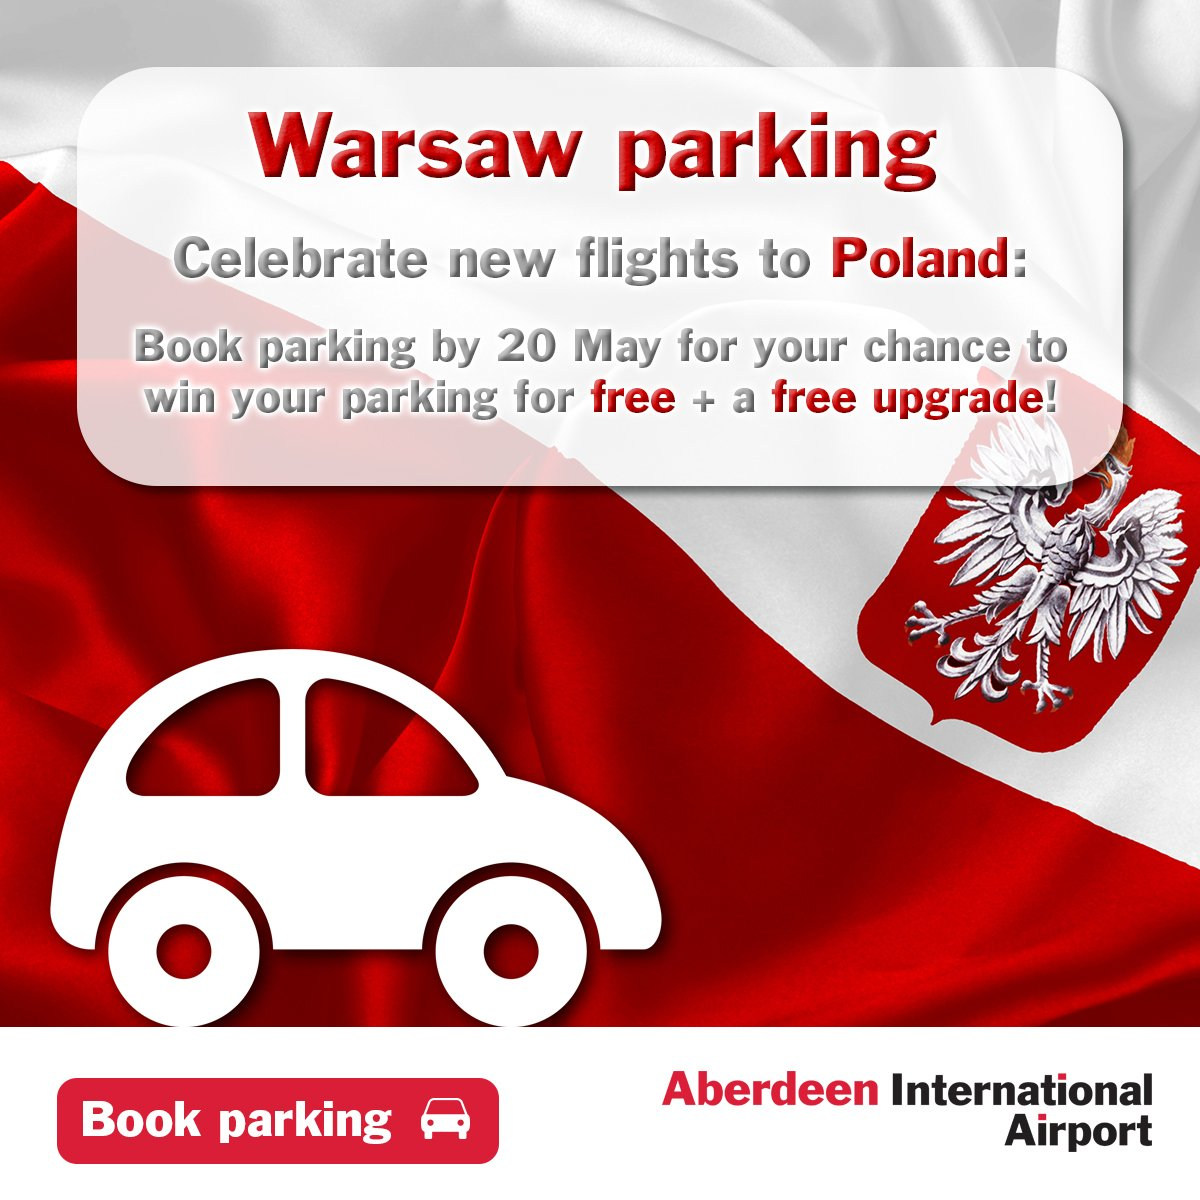 Celebrate Warsaw flights with the chance to win free parking + upgrade when booked by 20/05!